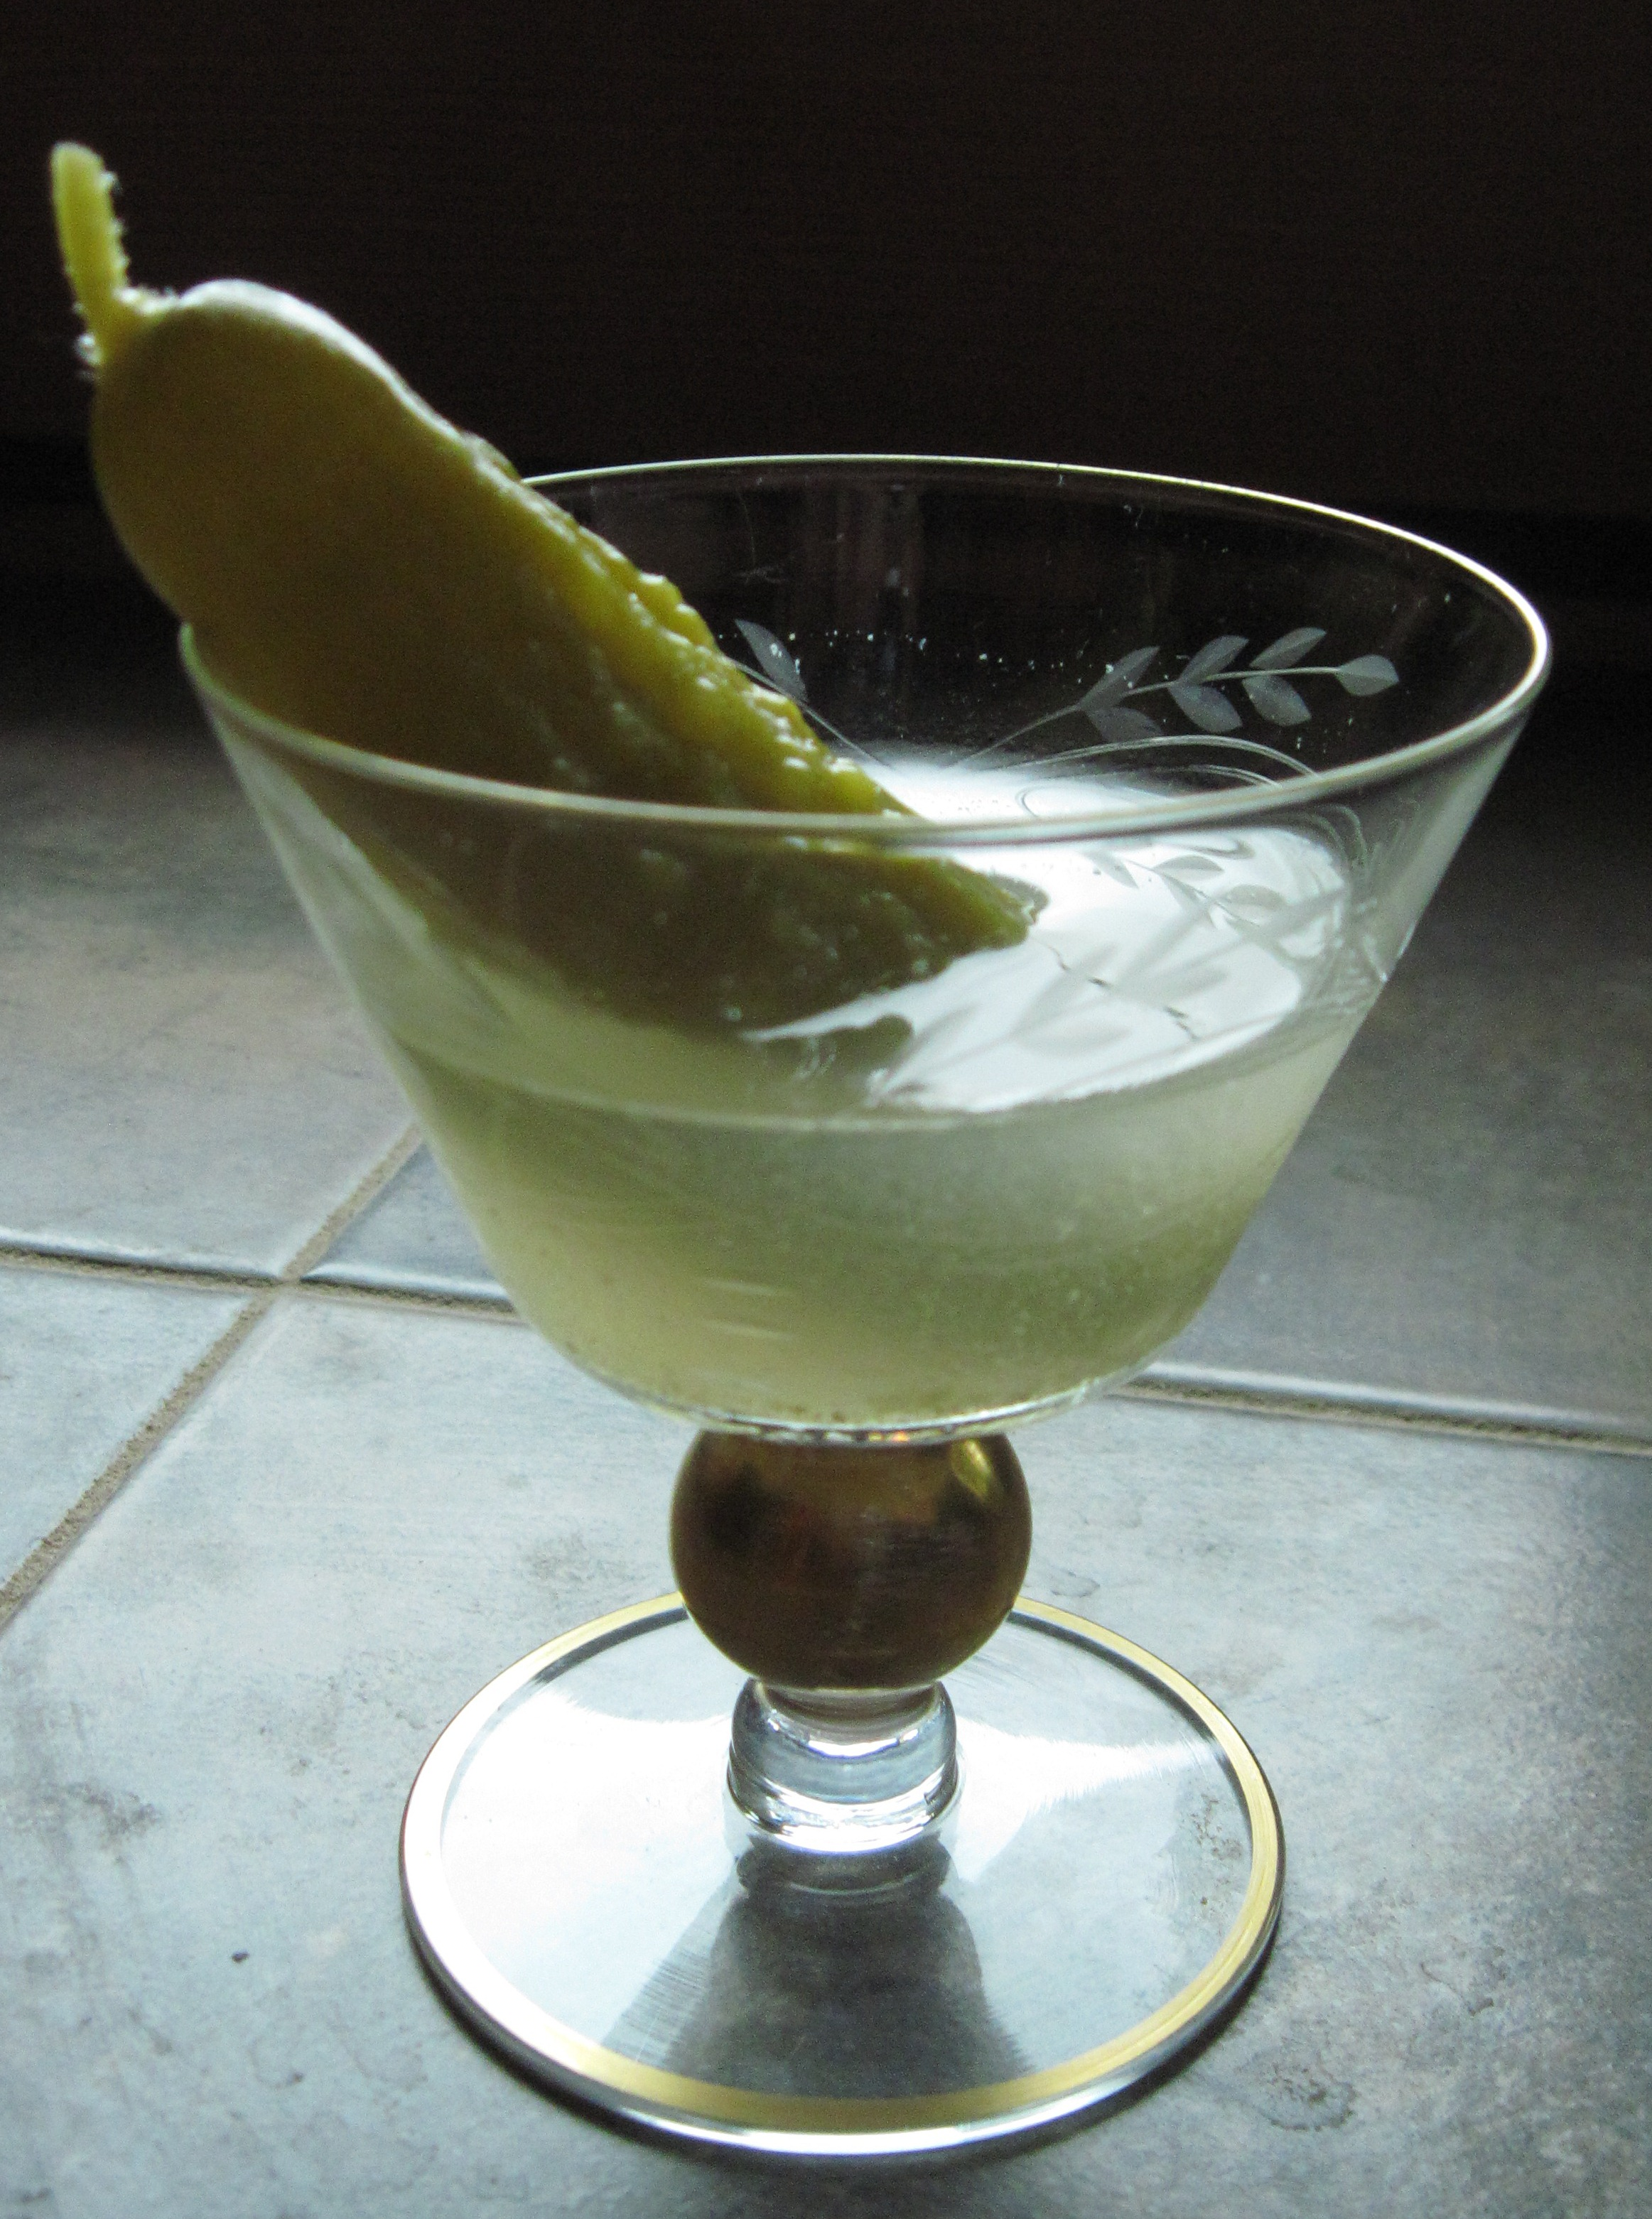 Vermouth is a type of wine that's flavored with botanicals, and can make a martini